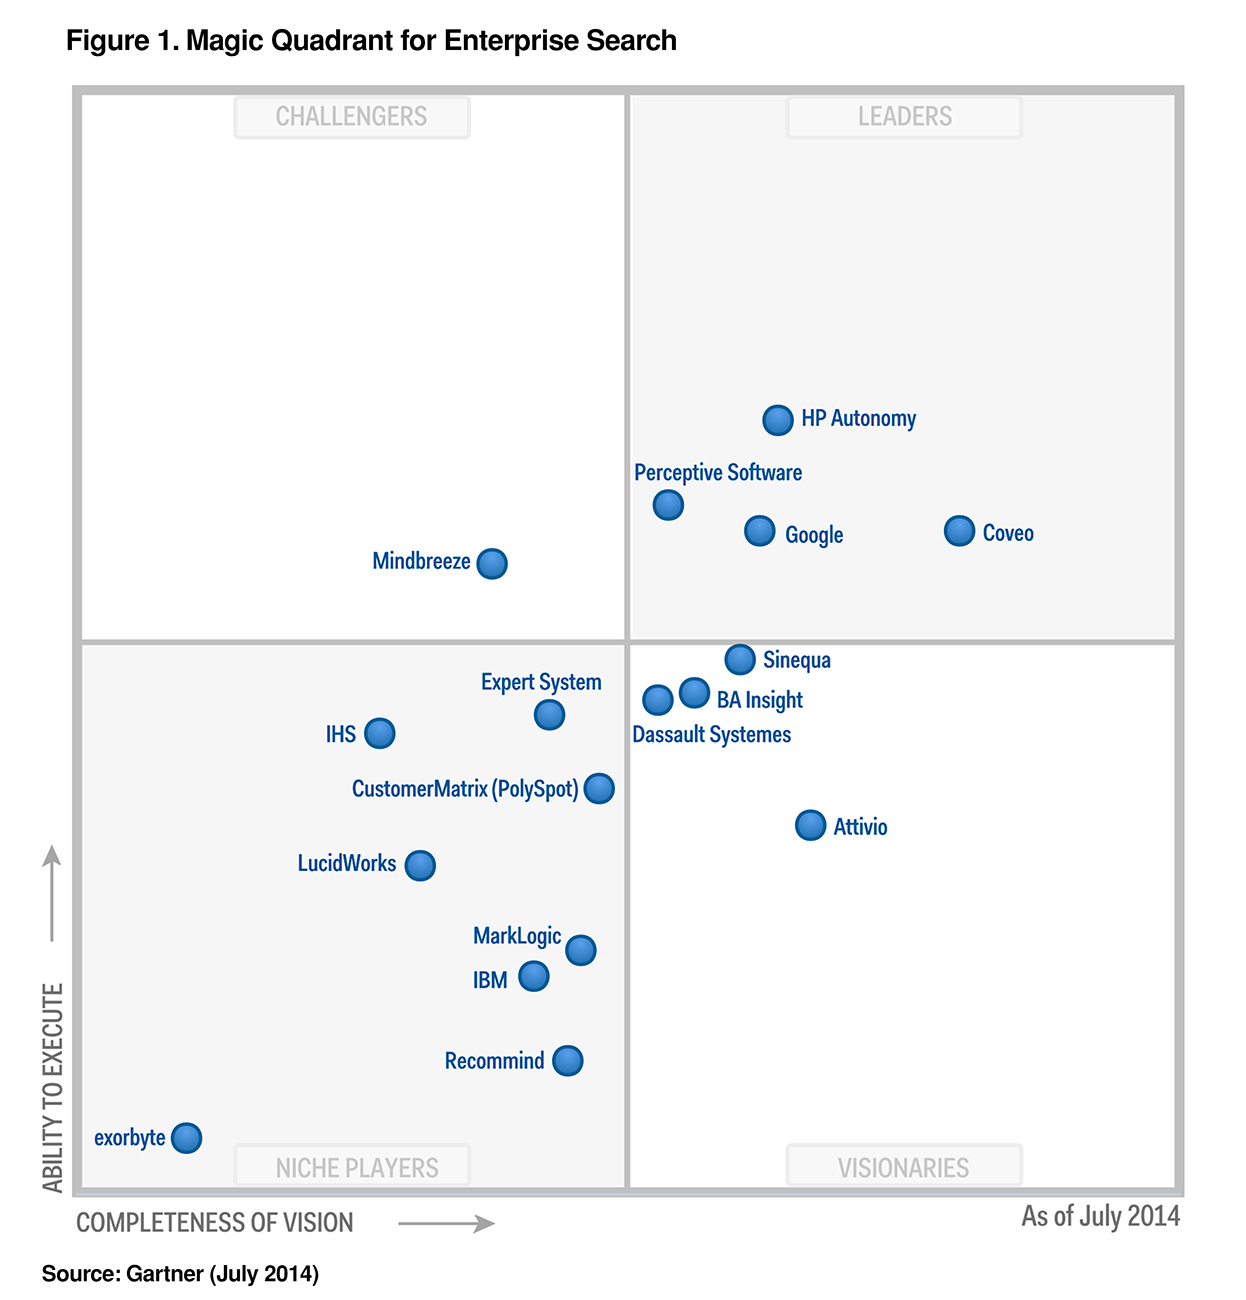 July 2014 Gartner Magic Quadrant - Coveo as Visionary